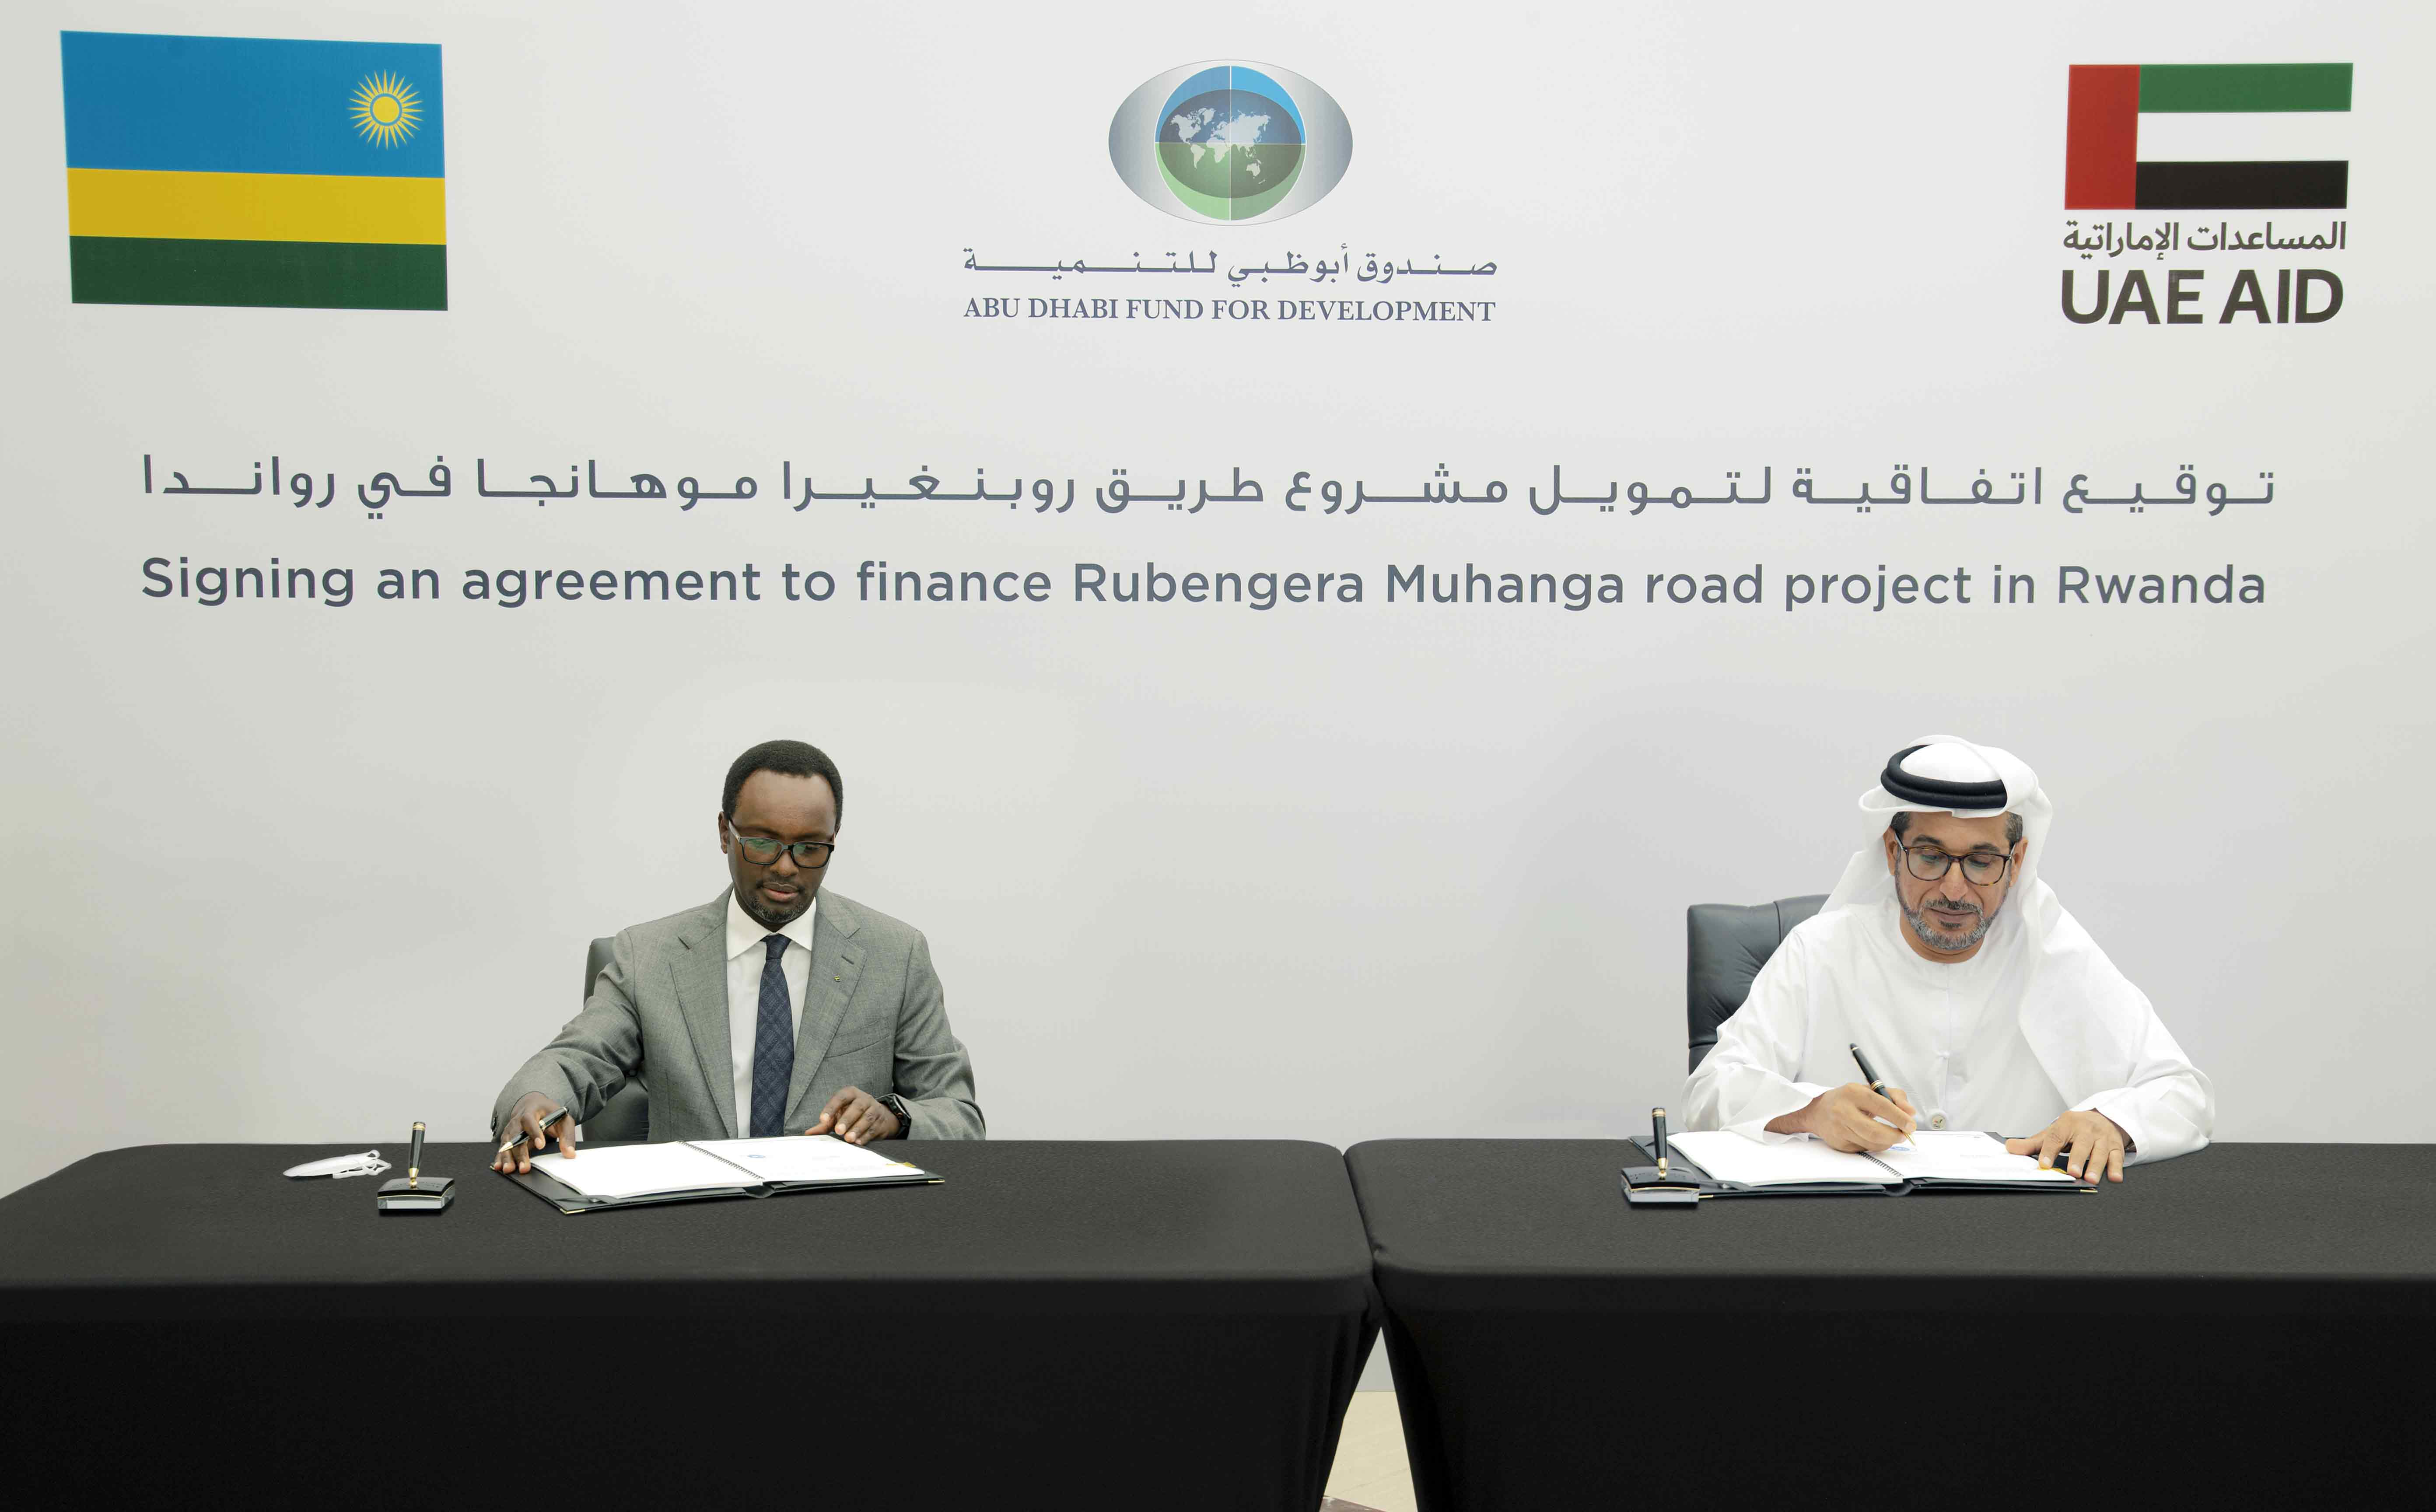 Abu Dhabi Fund for Development to Support Rwanda's Road Infrastructure Development Project